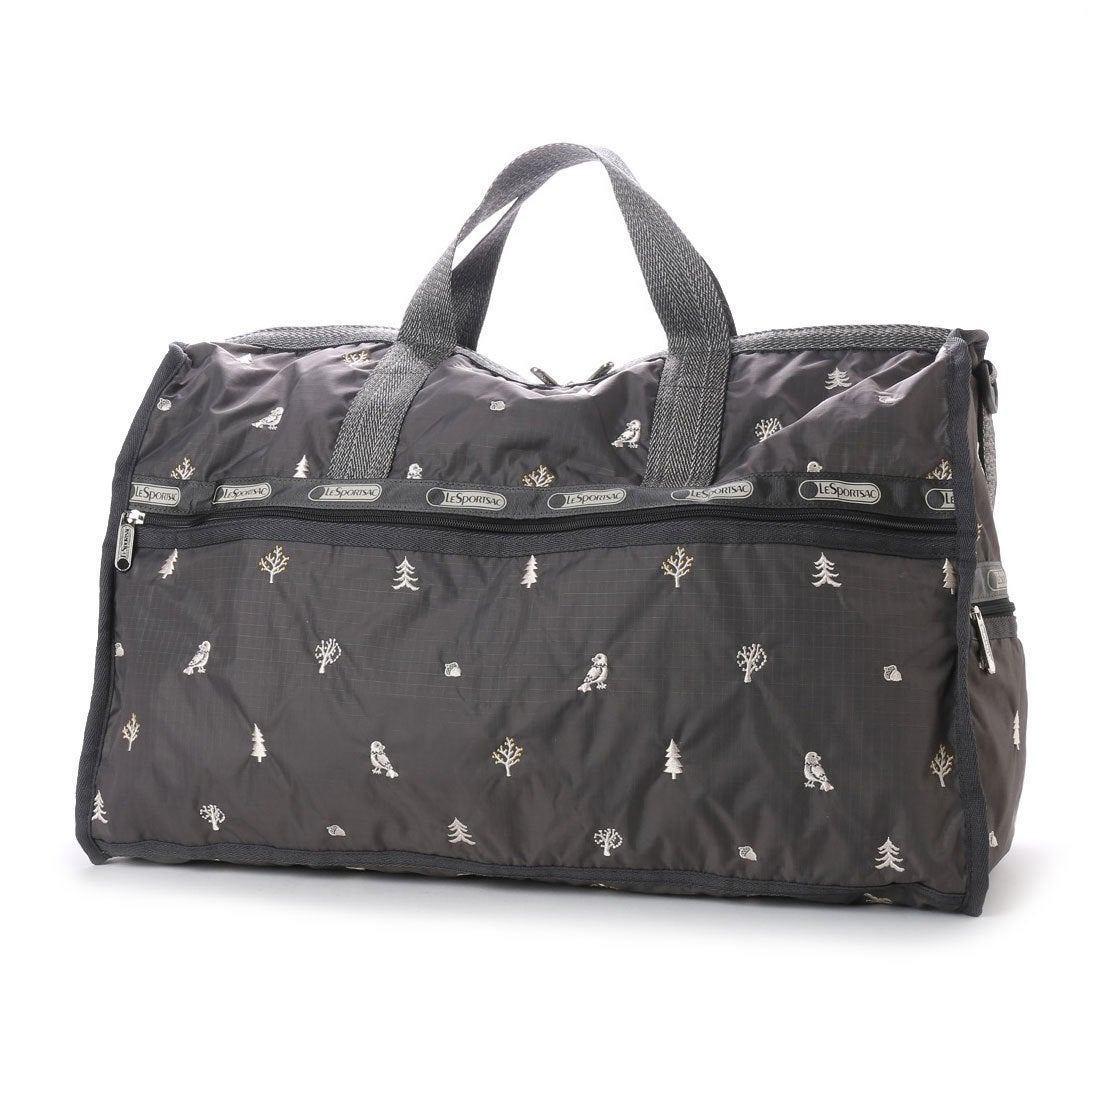 【SALE 30%OFF】レスポートサック LeSportsac LARGE WEEKENDER (WINTER FOREST) レディース